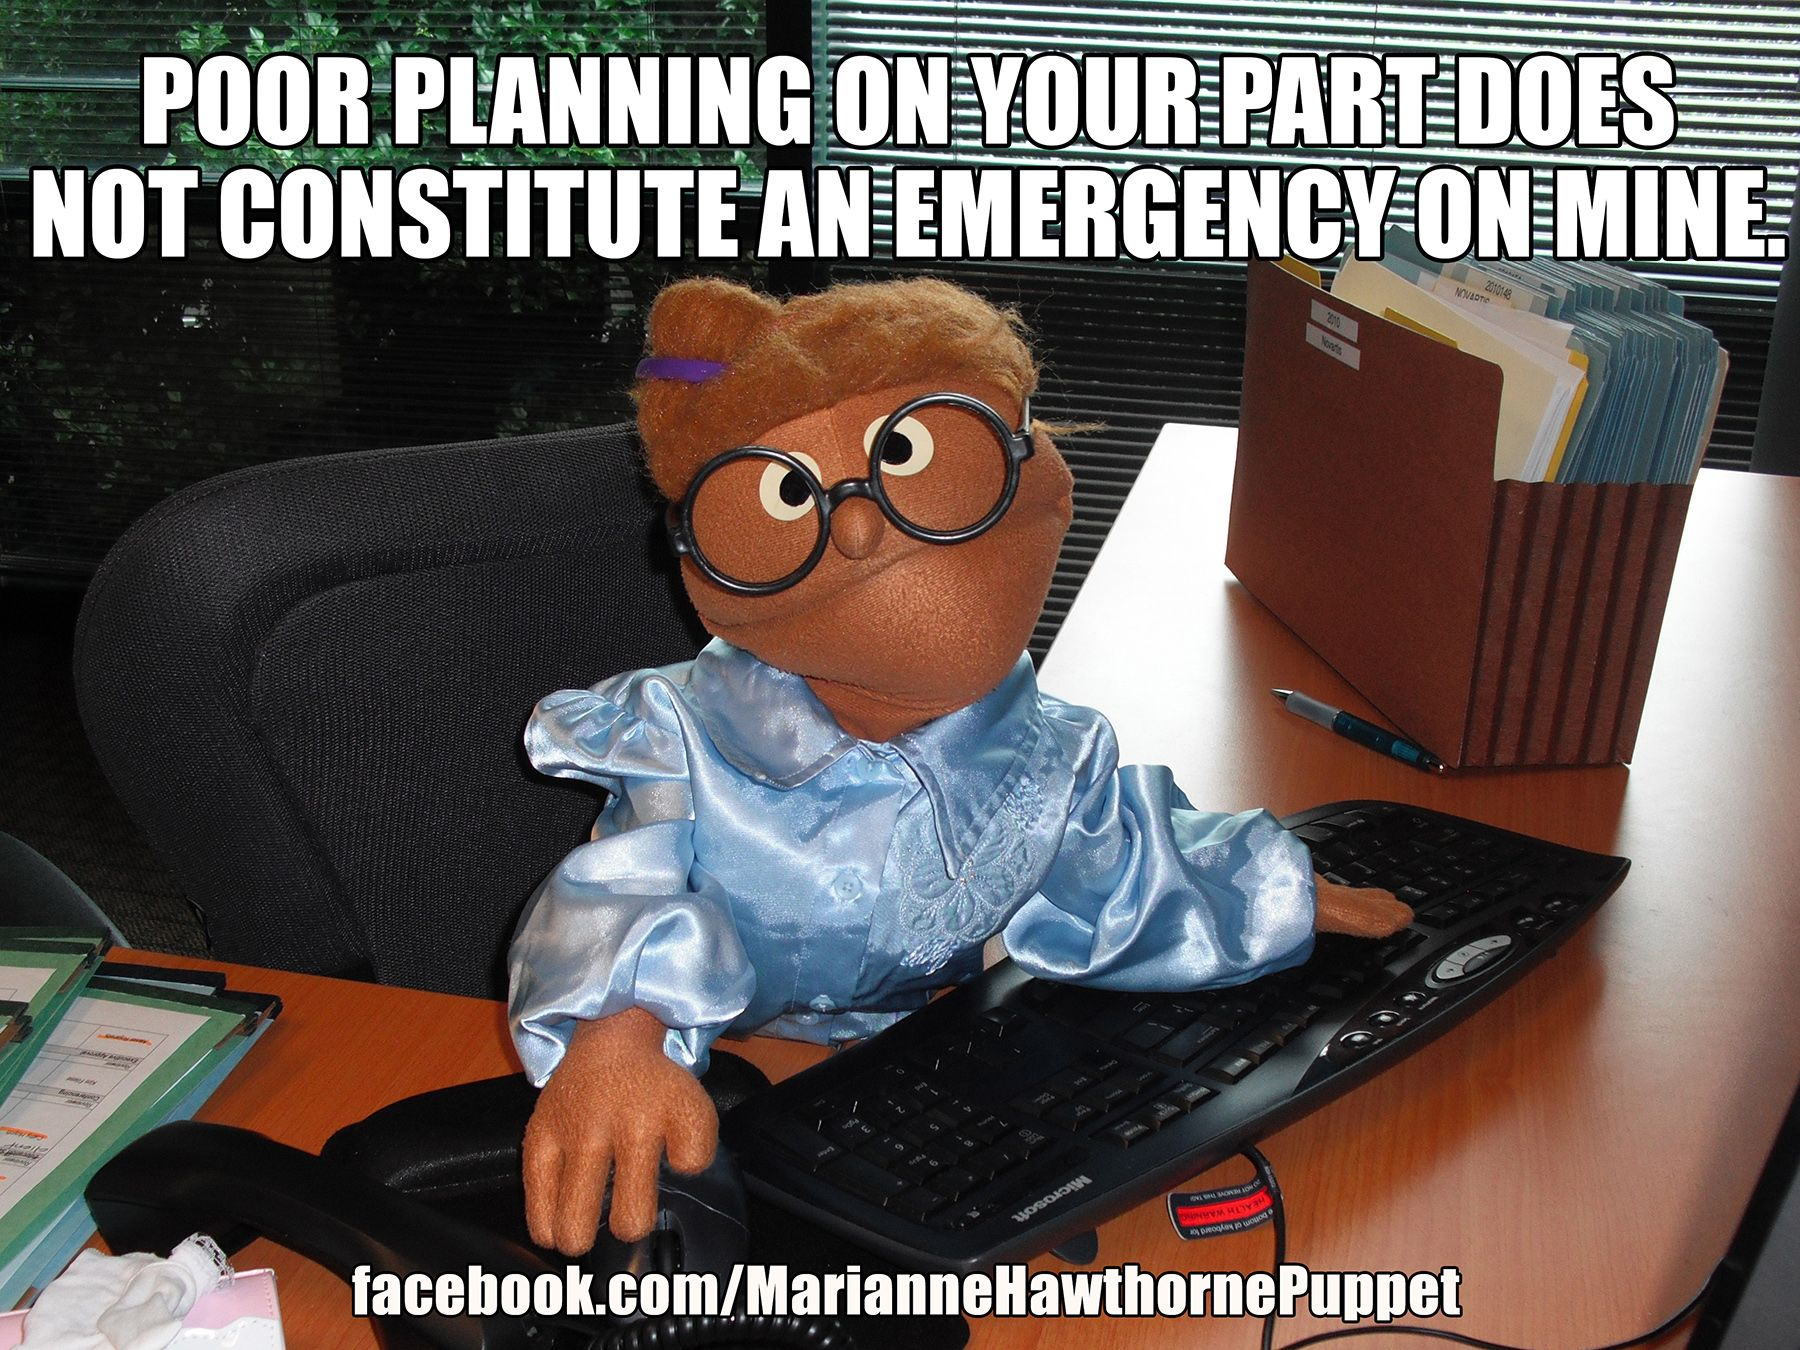 Poor Planning On Your Part Does Not Constitute An